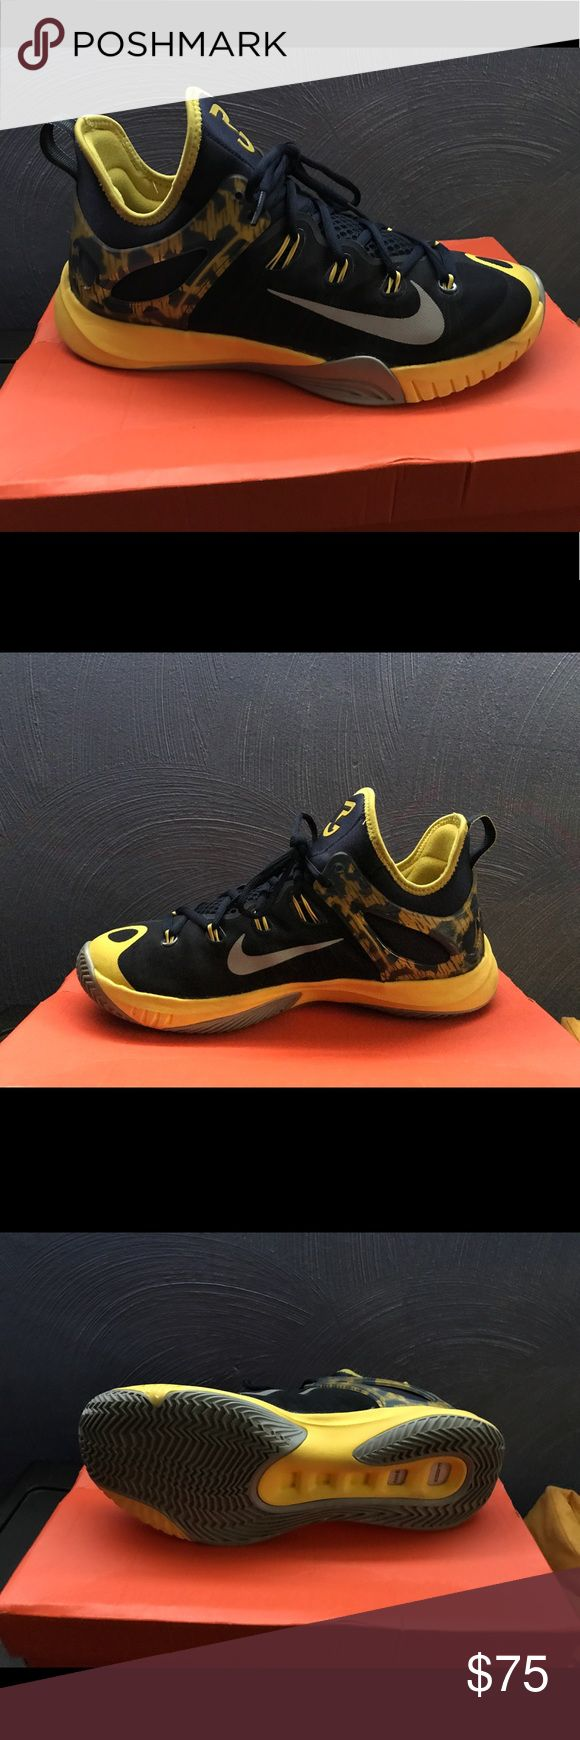 2015 hyper revs Paul George's Only wore 4 times no scuffs or anything they are in great condition Nike Shoes Athletic Shoes